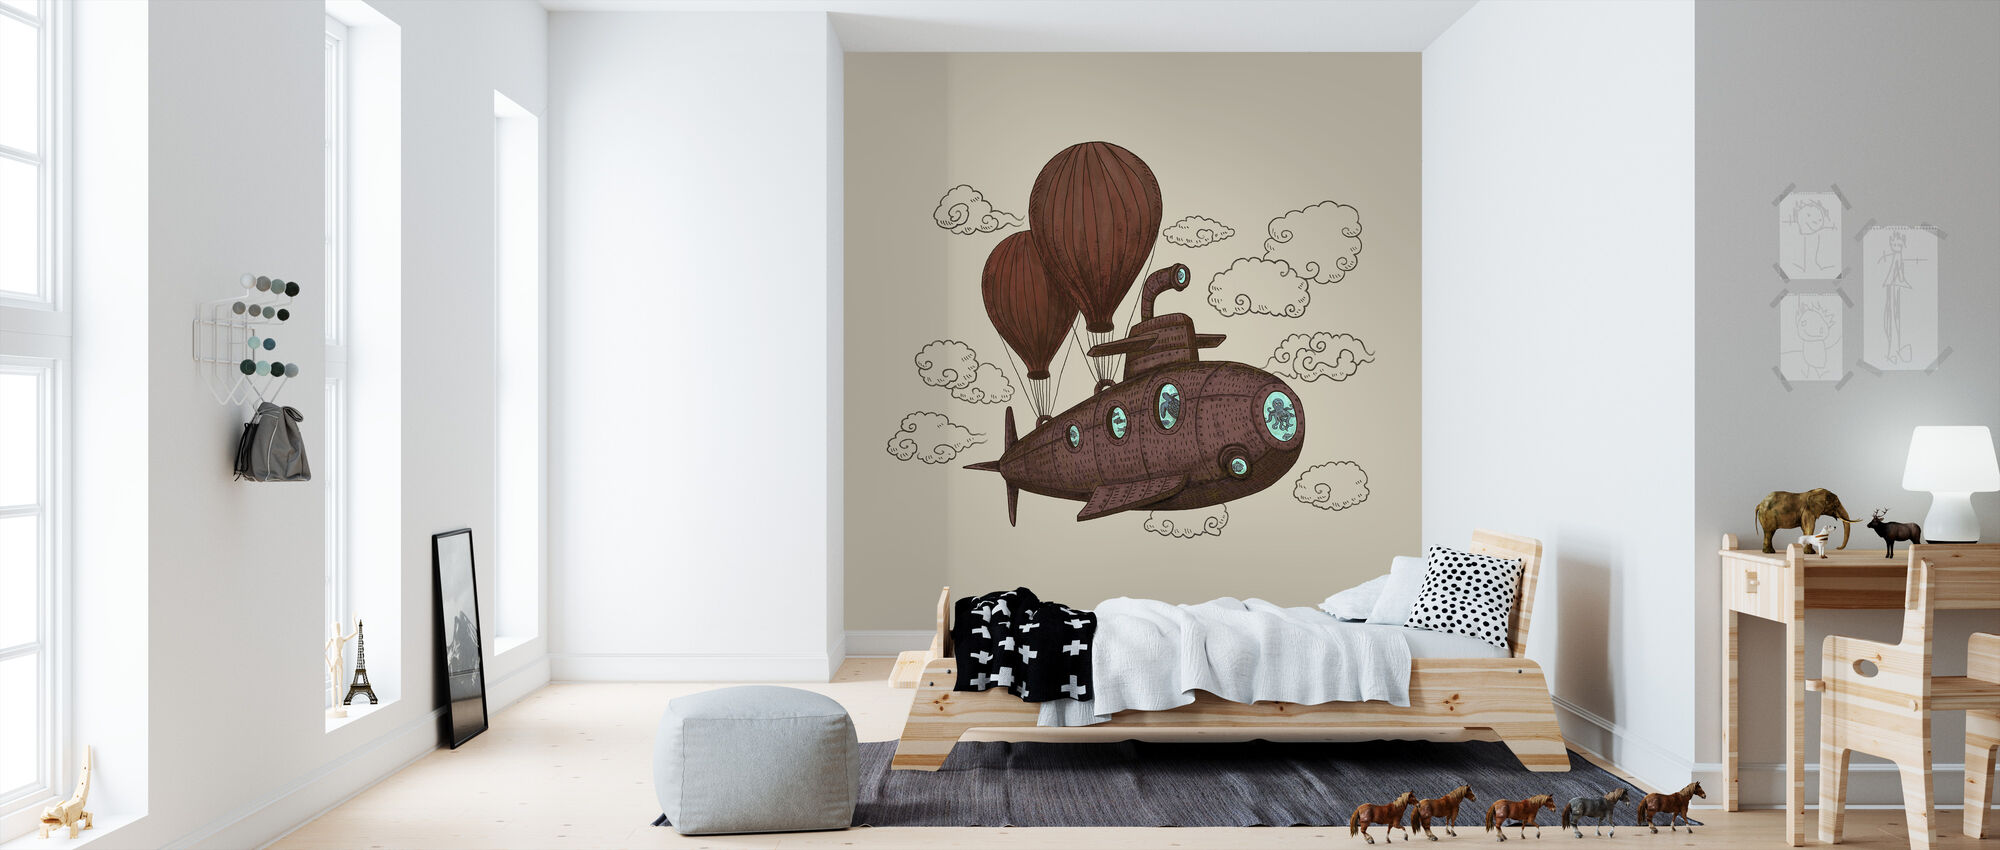 Fantastic Voyage - Wallpaper - Kids Room